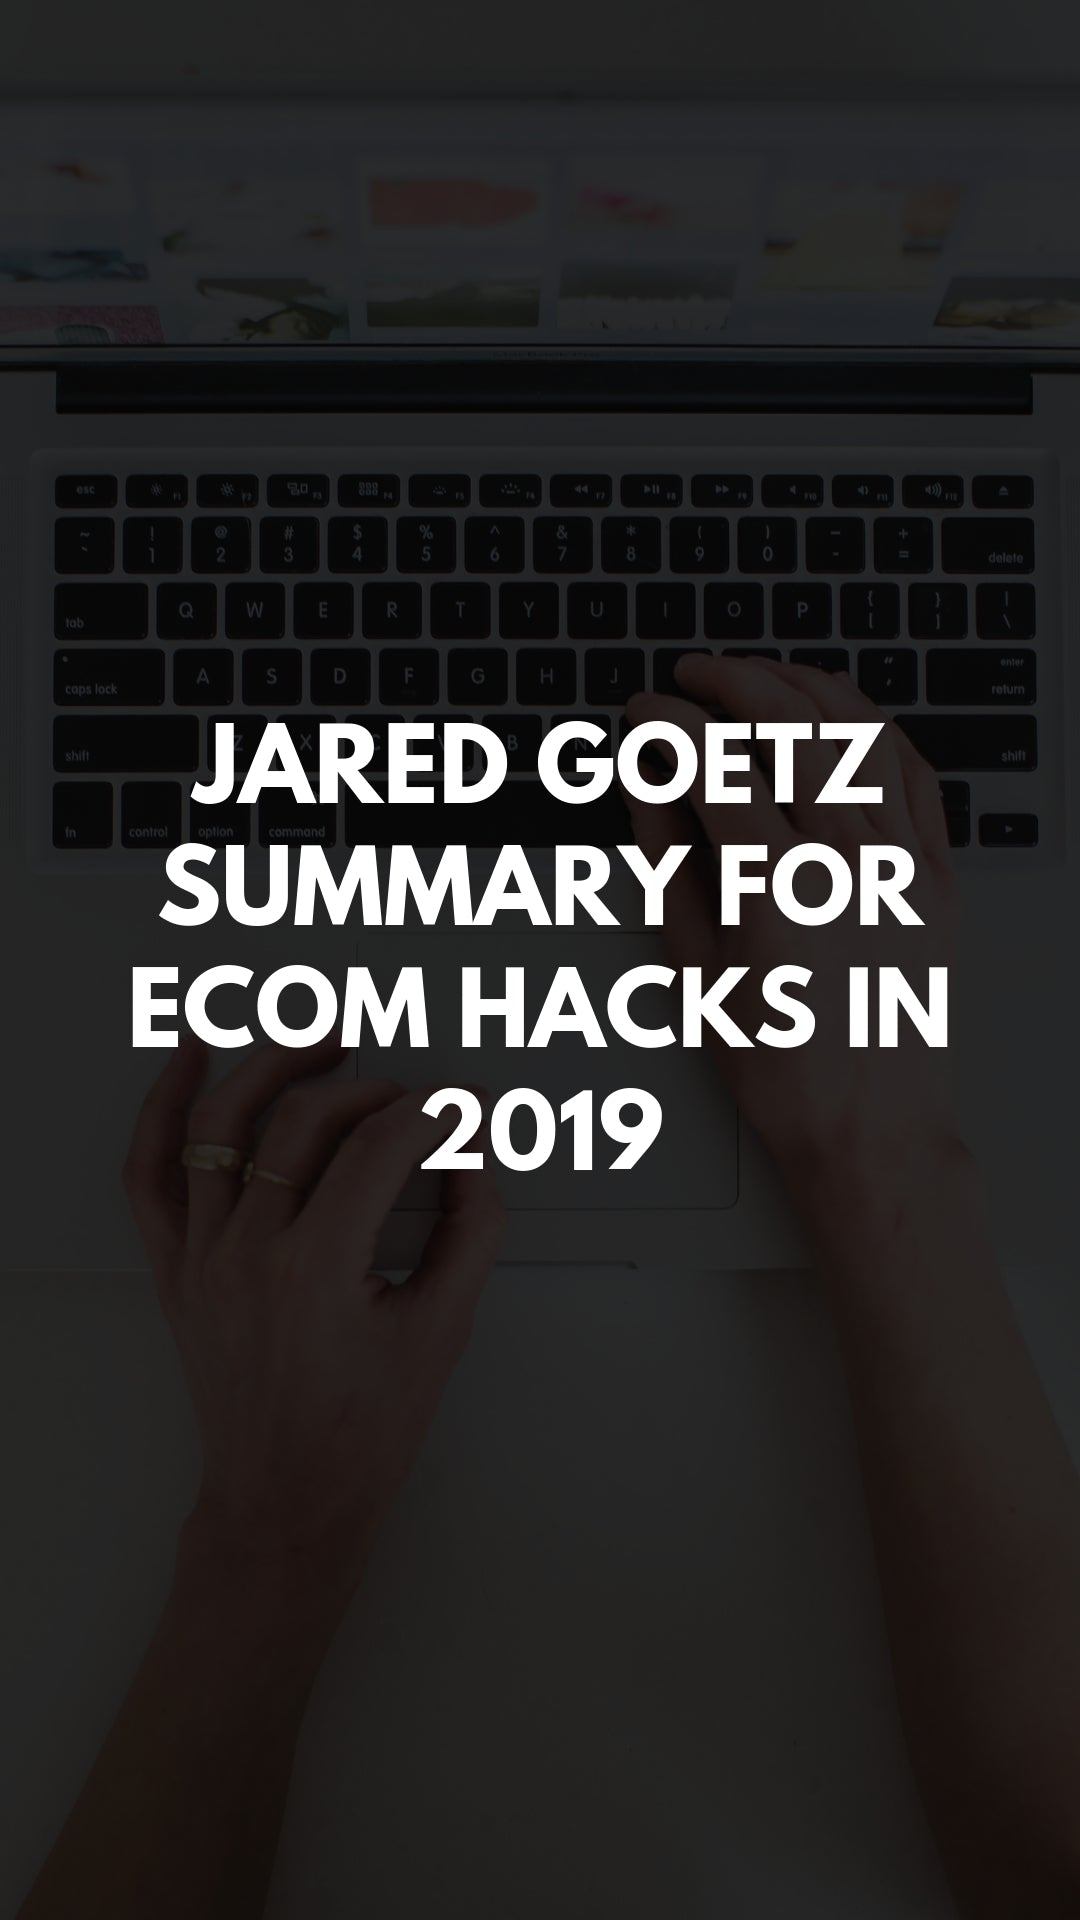 Jared goetz summary for ecom hacks in 2019